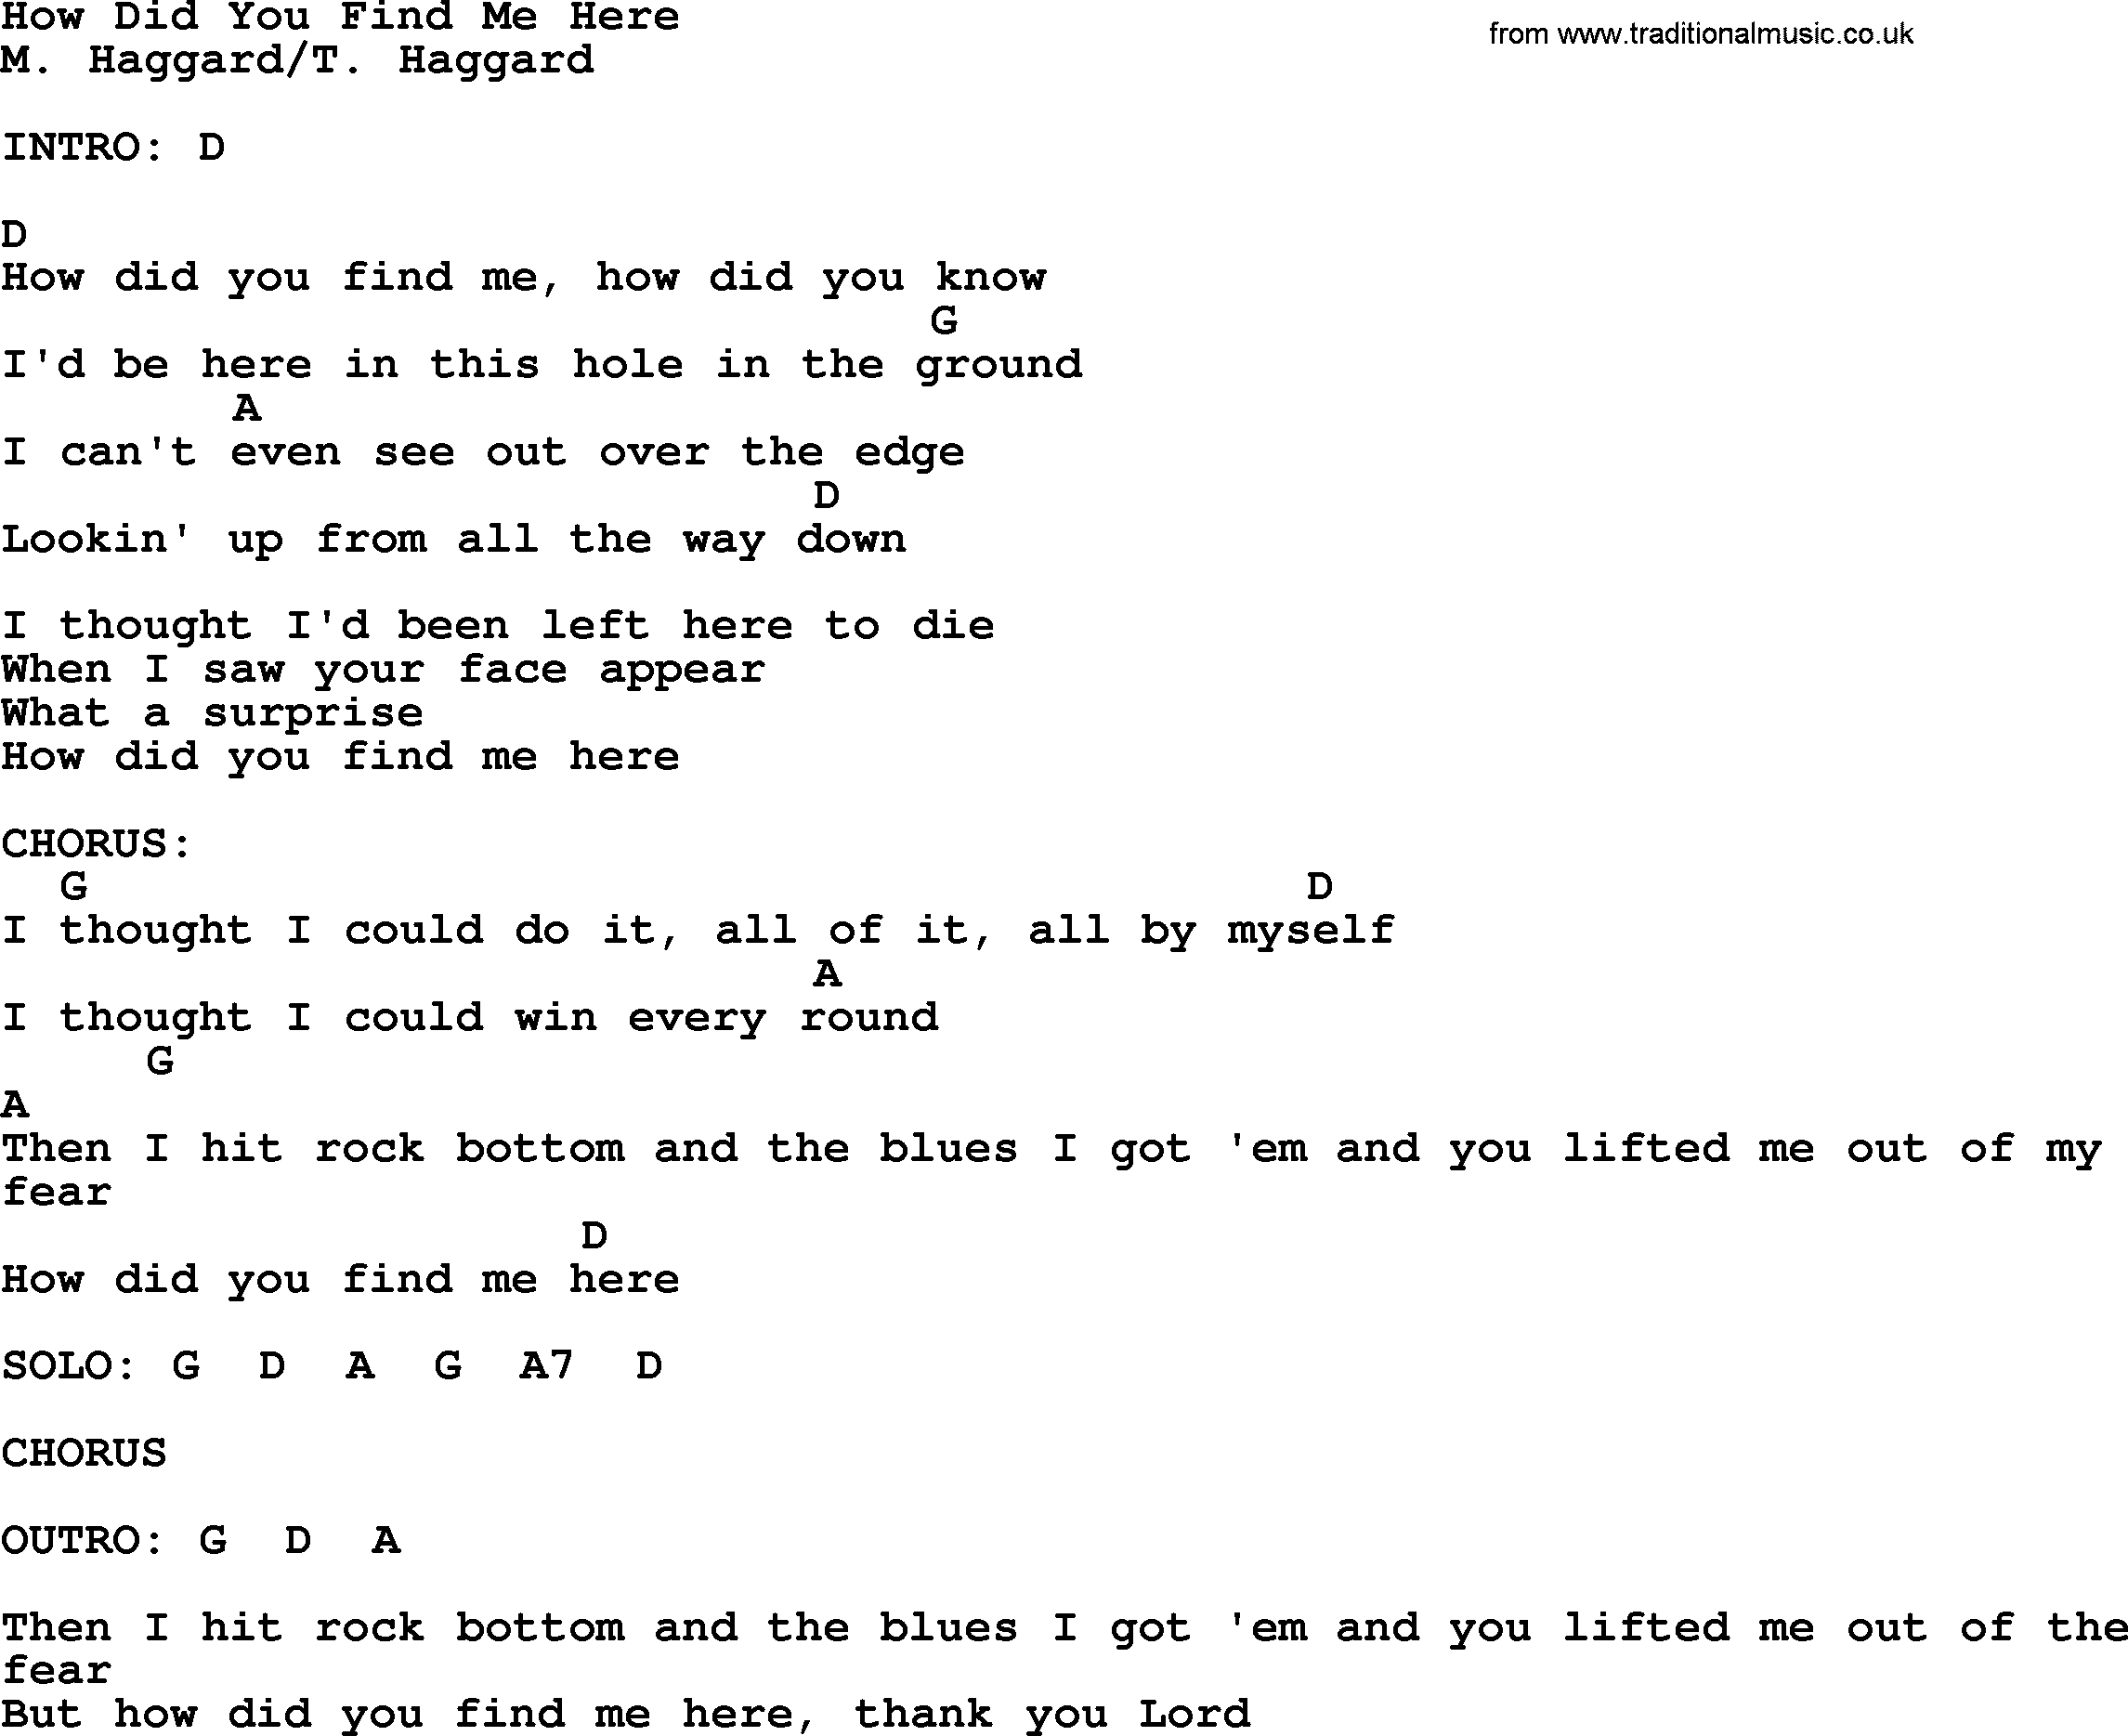 How Did You Find Me Here By Merle Haggard Lyrics And Chords